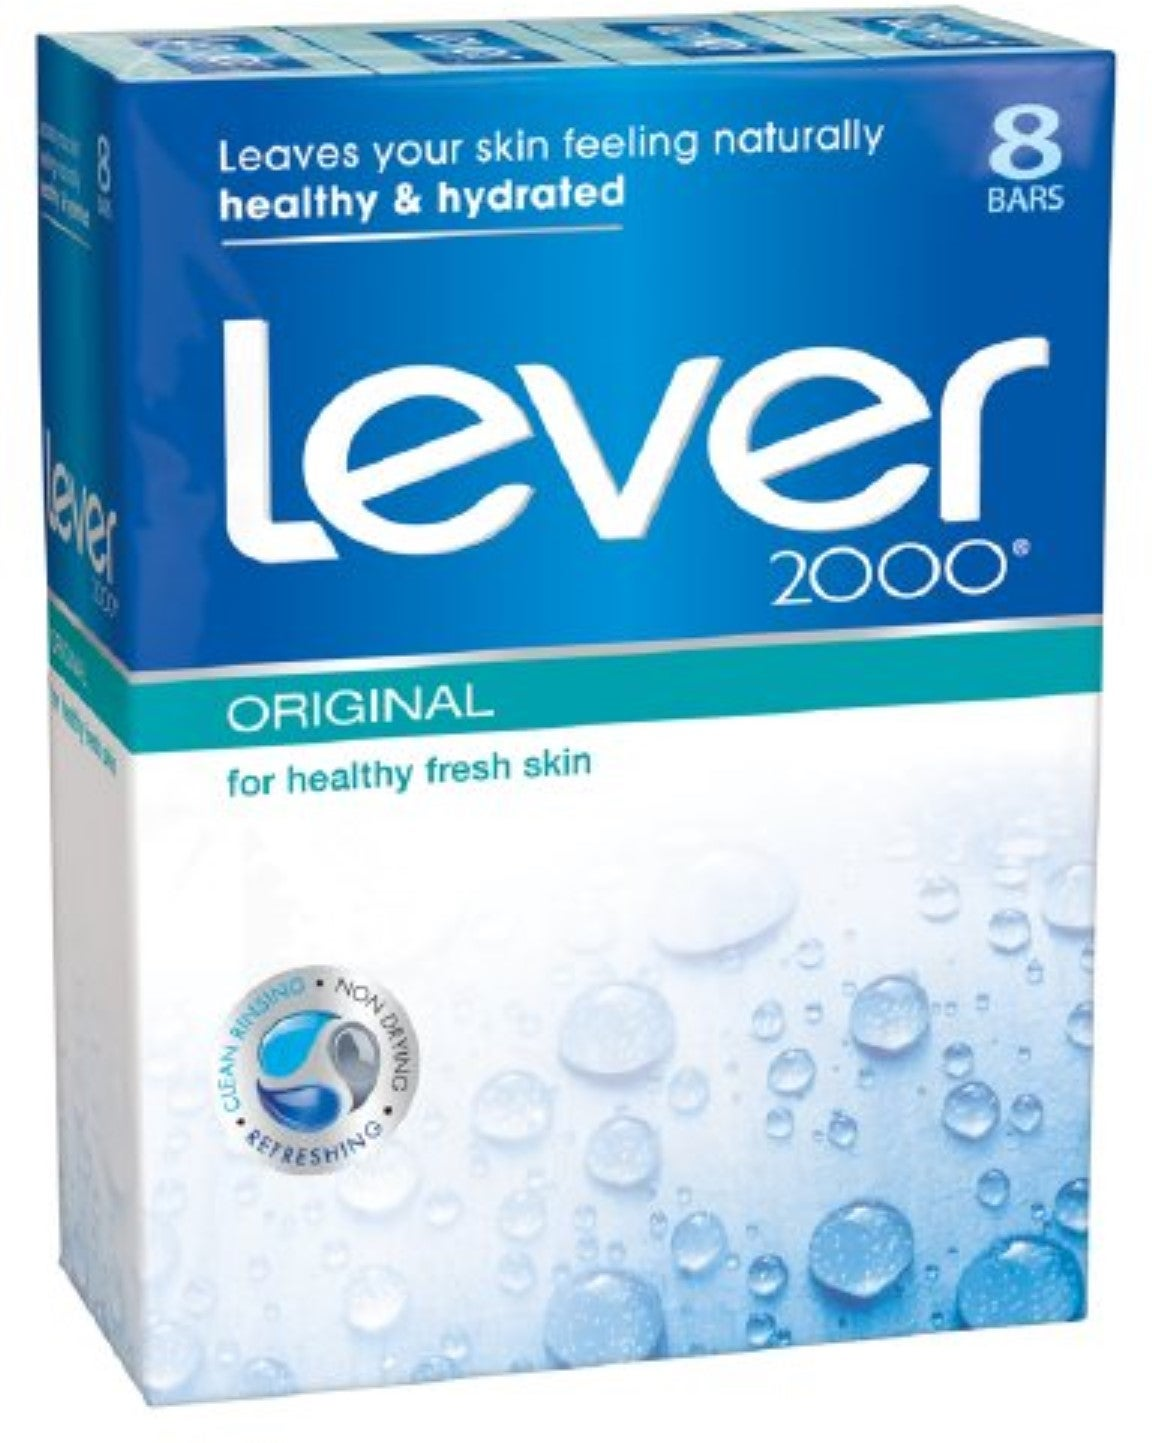 Lever 2000 Bar Soap Original 4 Oz Bars 8 Ea Free Shipping On Orders Over 45 18604864